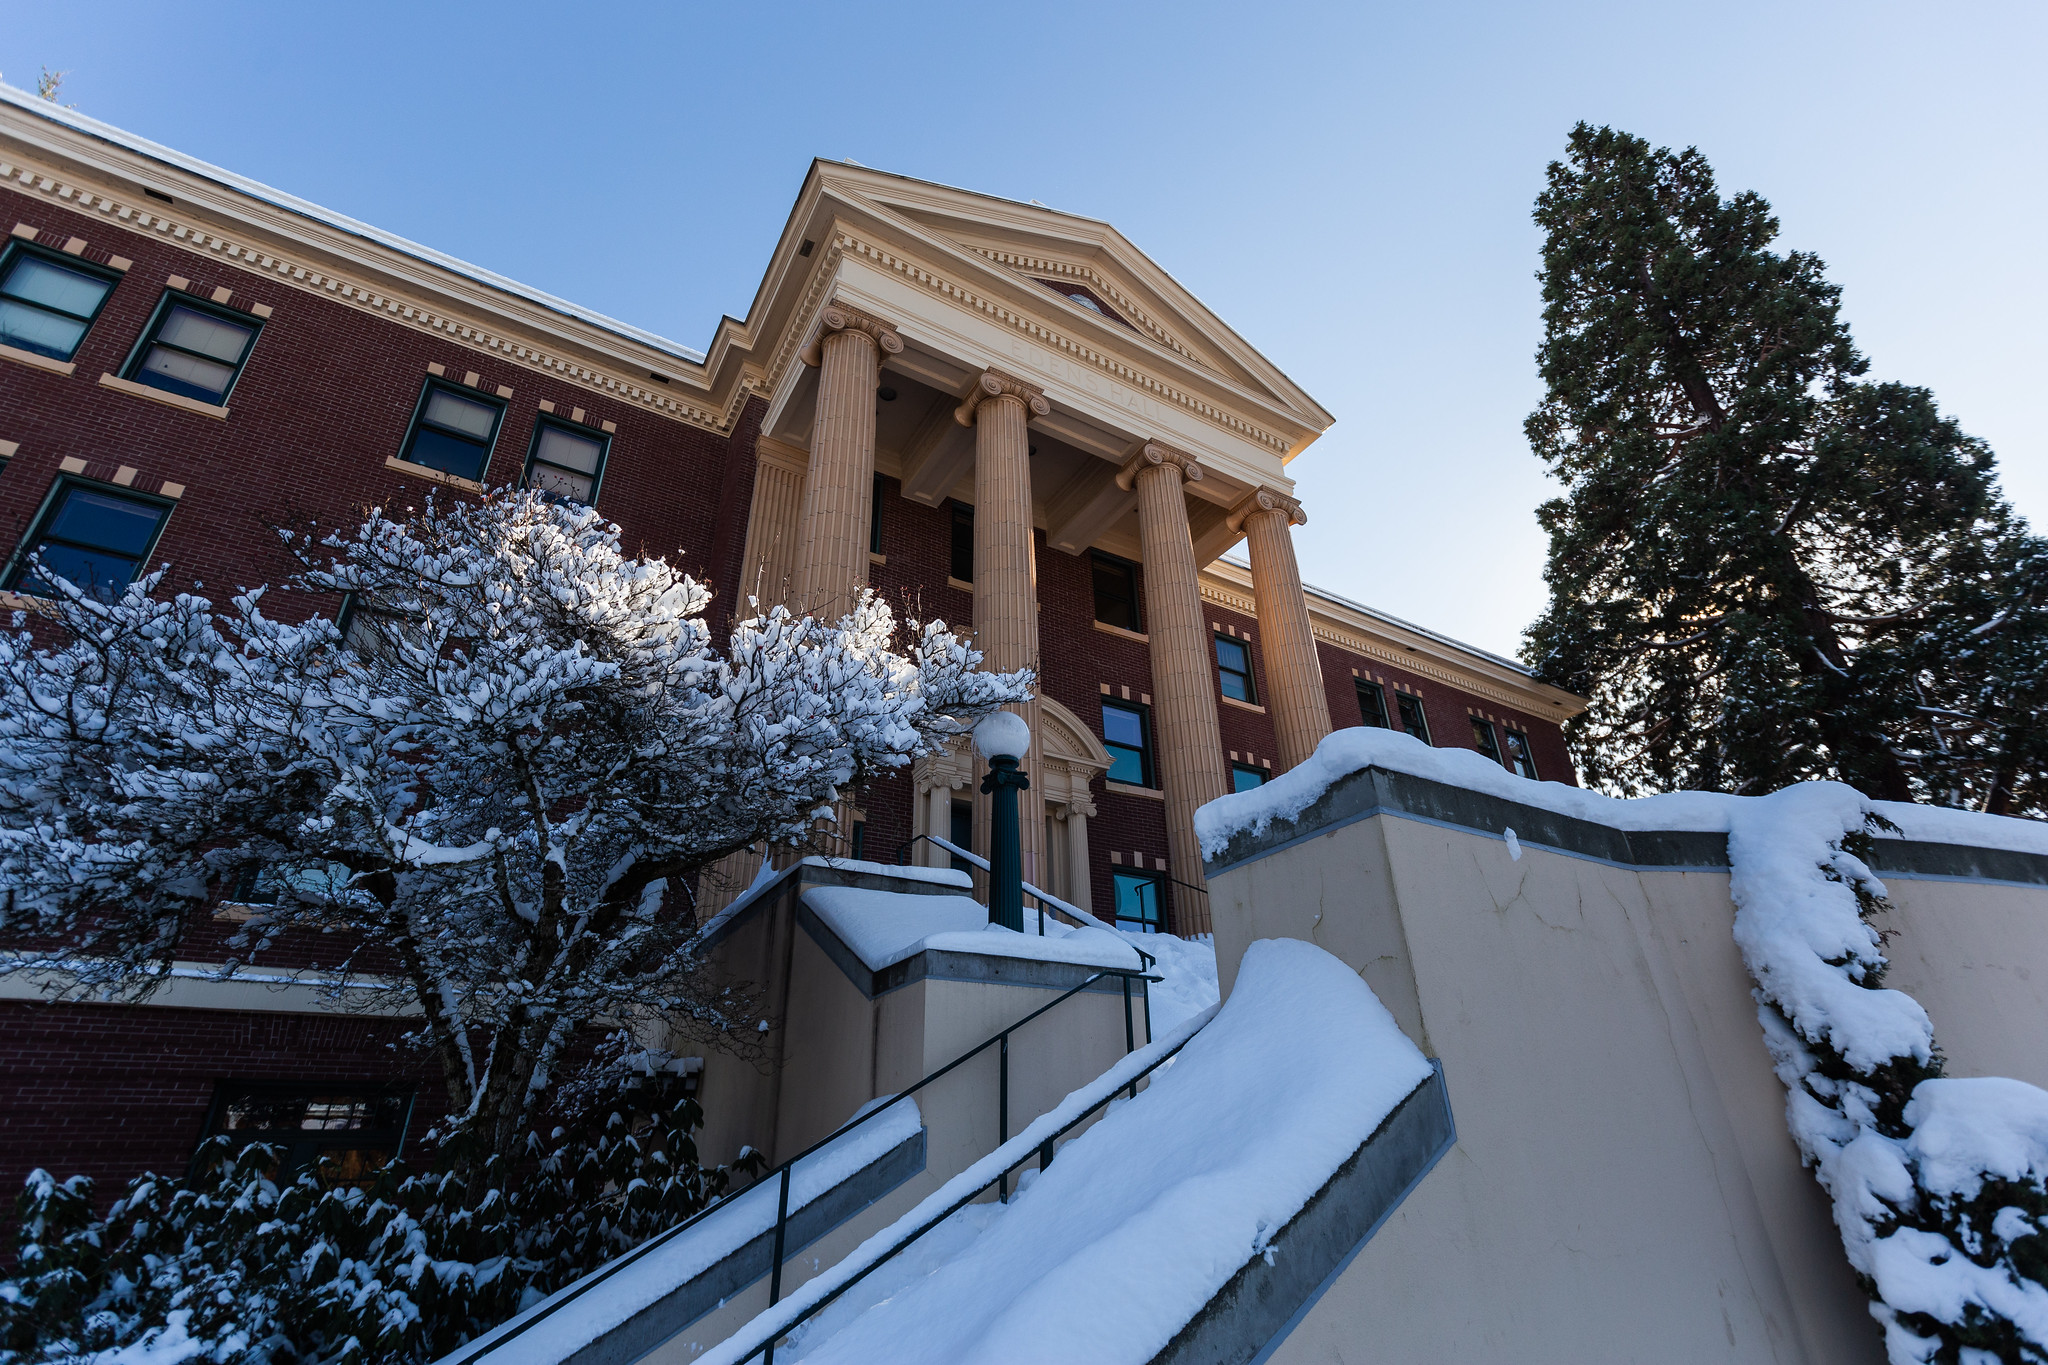 Edens Hall covered in a thin blanket of clean white snow